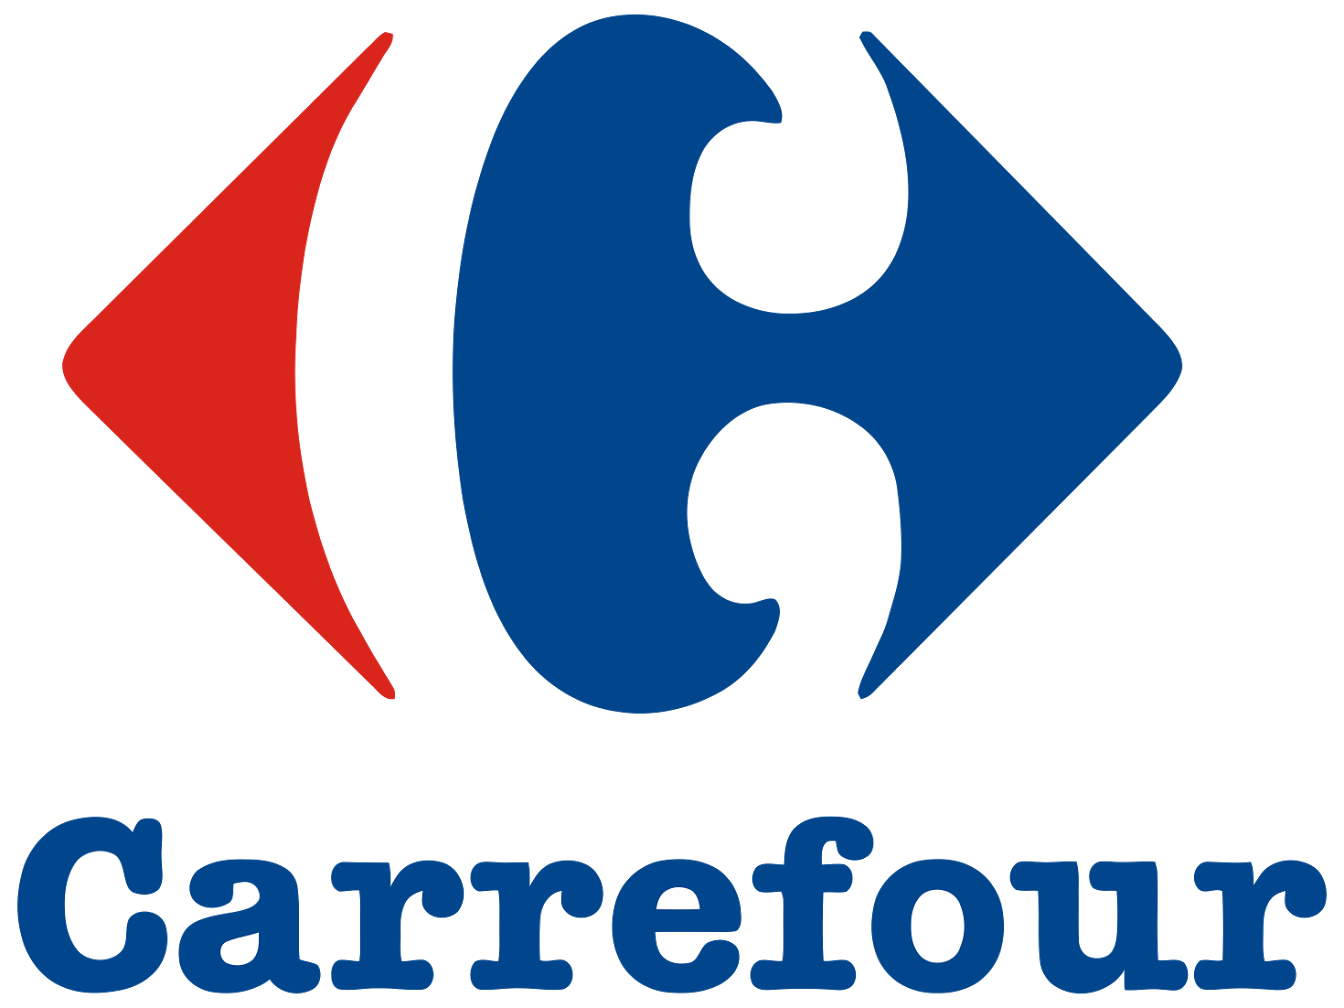 Carrefour-logo-vector